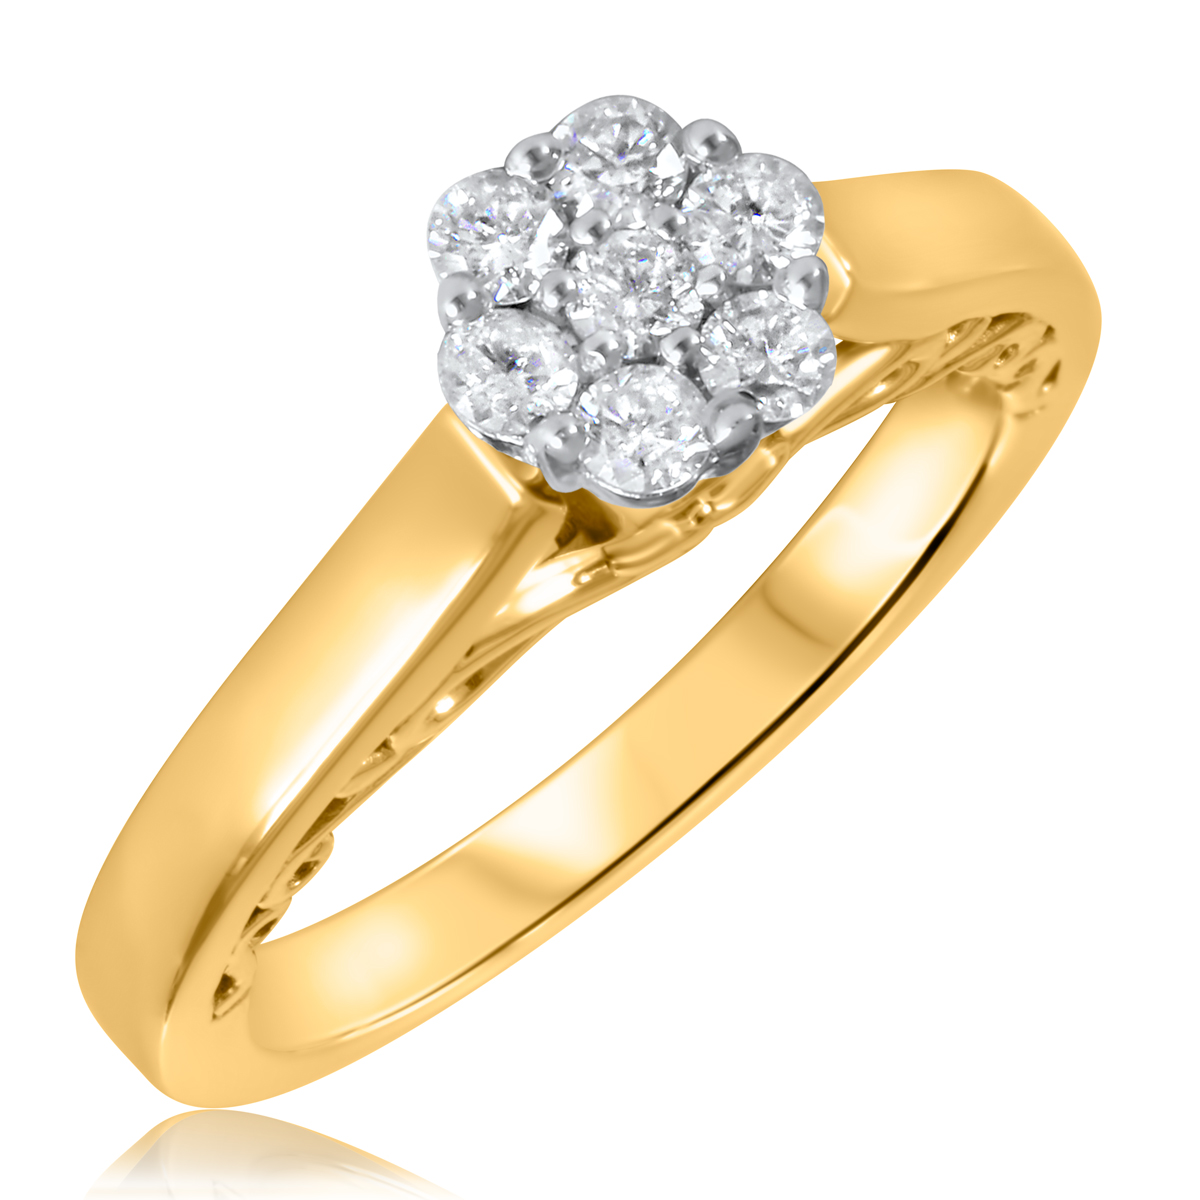 1/3 CT. T.W. Diamond Ladies Engagement Ring 14K Yellow Gold- Size 8